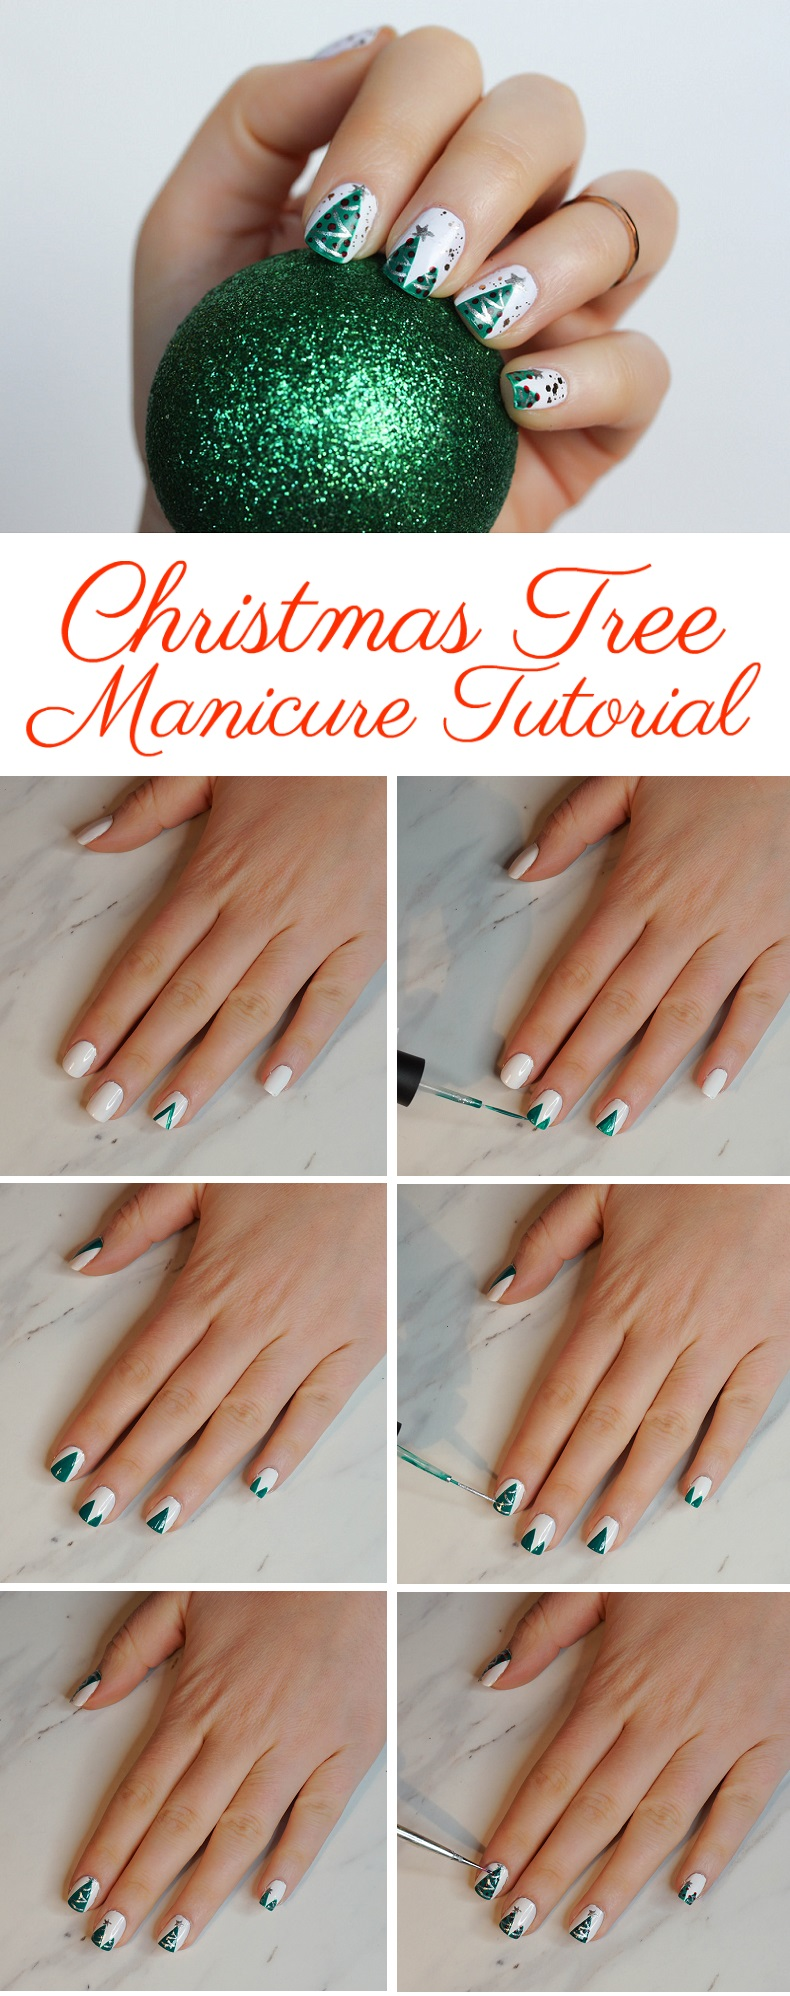 The Best & Easiest Christmas Tree Manicure Tutorial